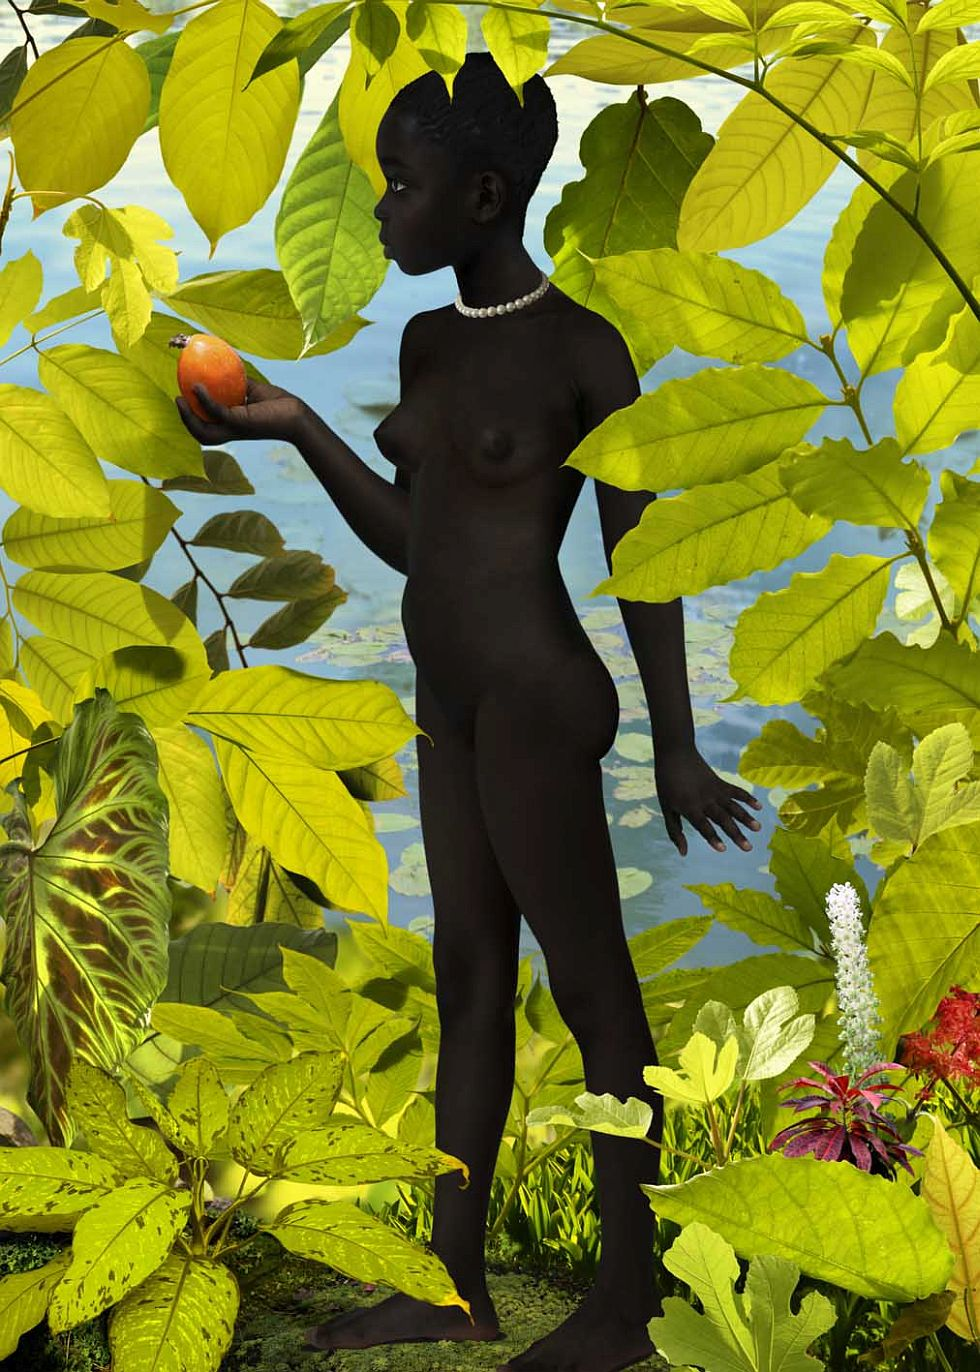 ruud-van-empel-beetleshuxley-in-london-05